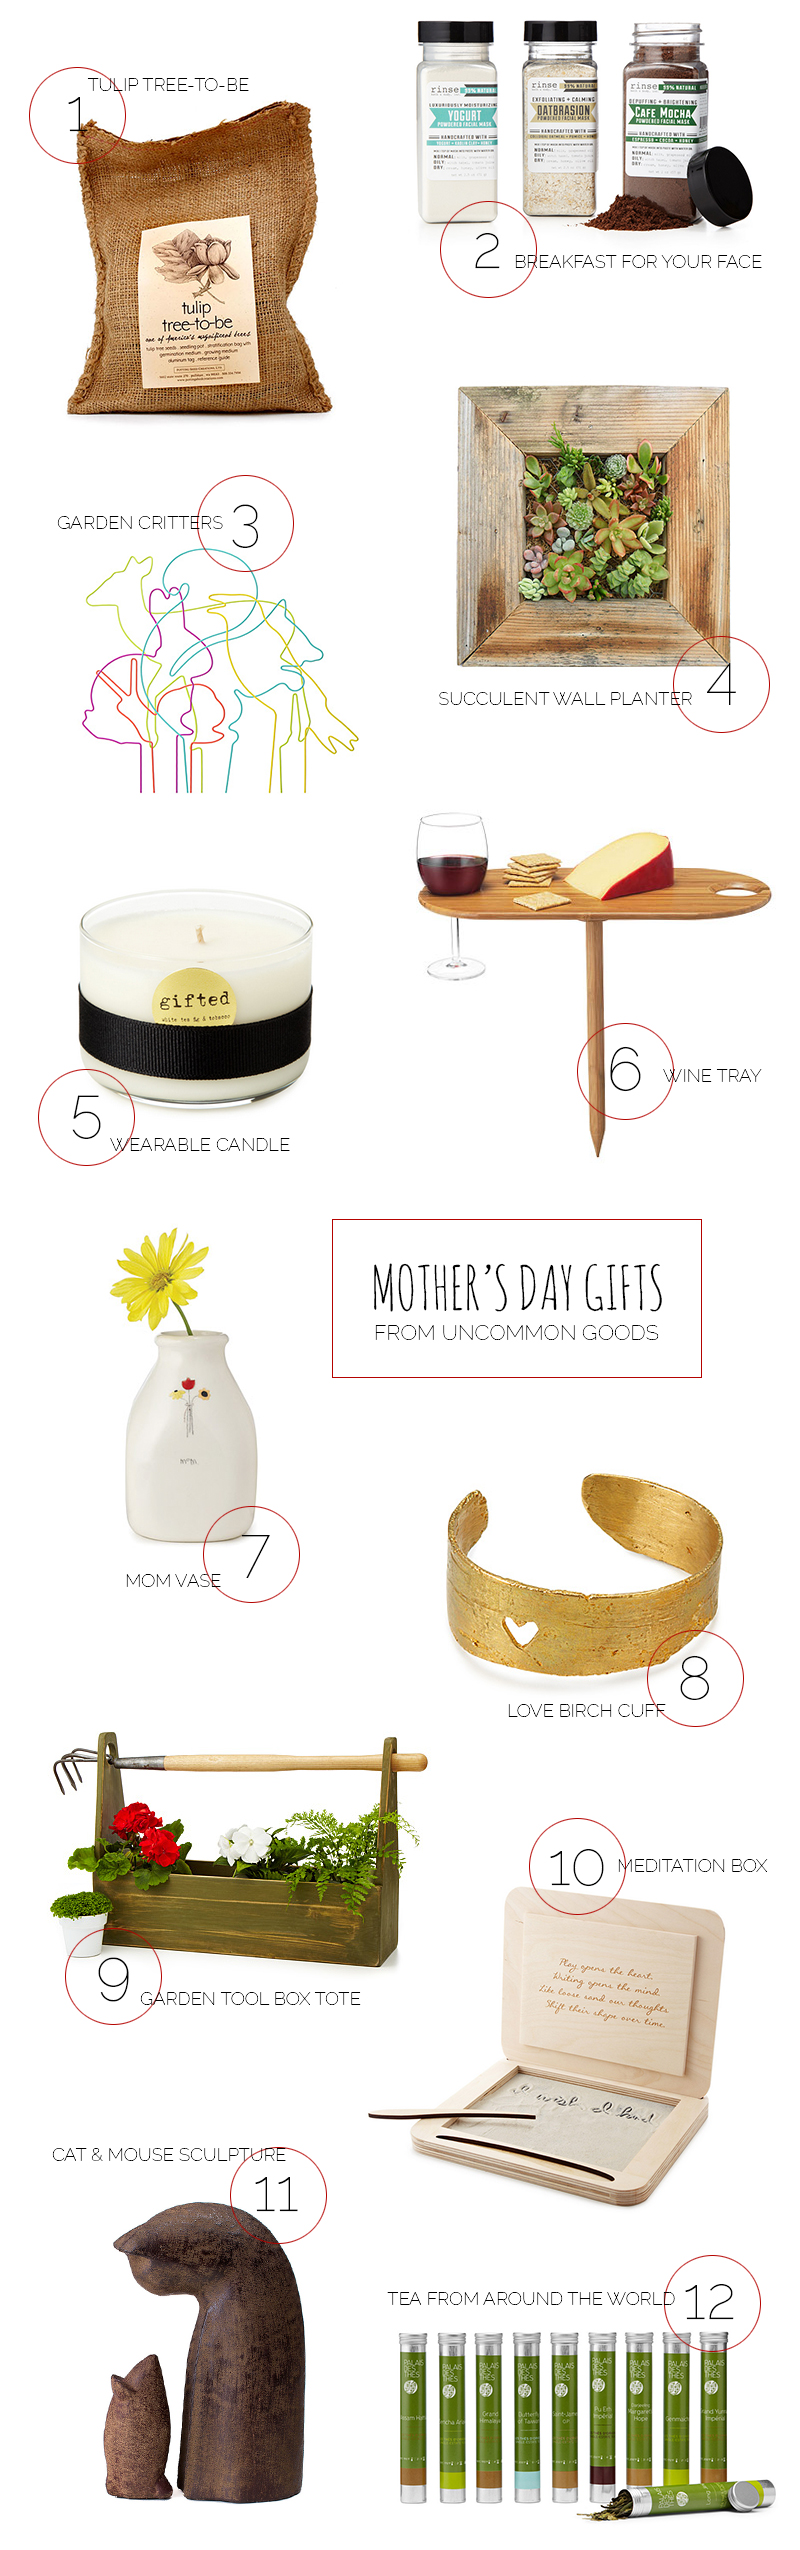 12MothersDayGifts-UncommonGoods